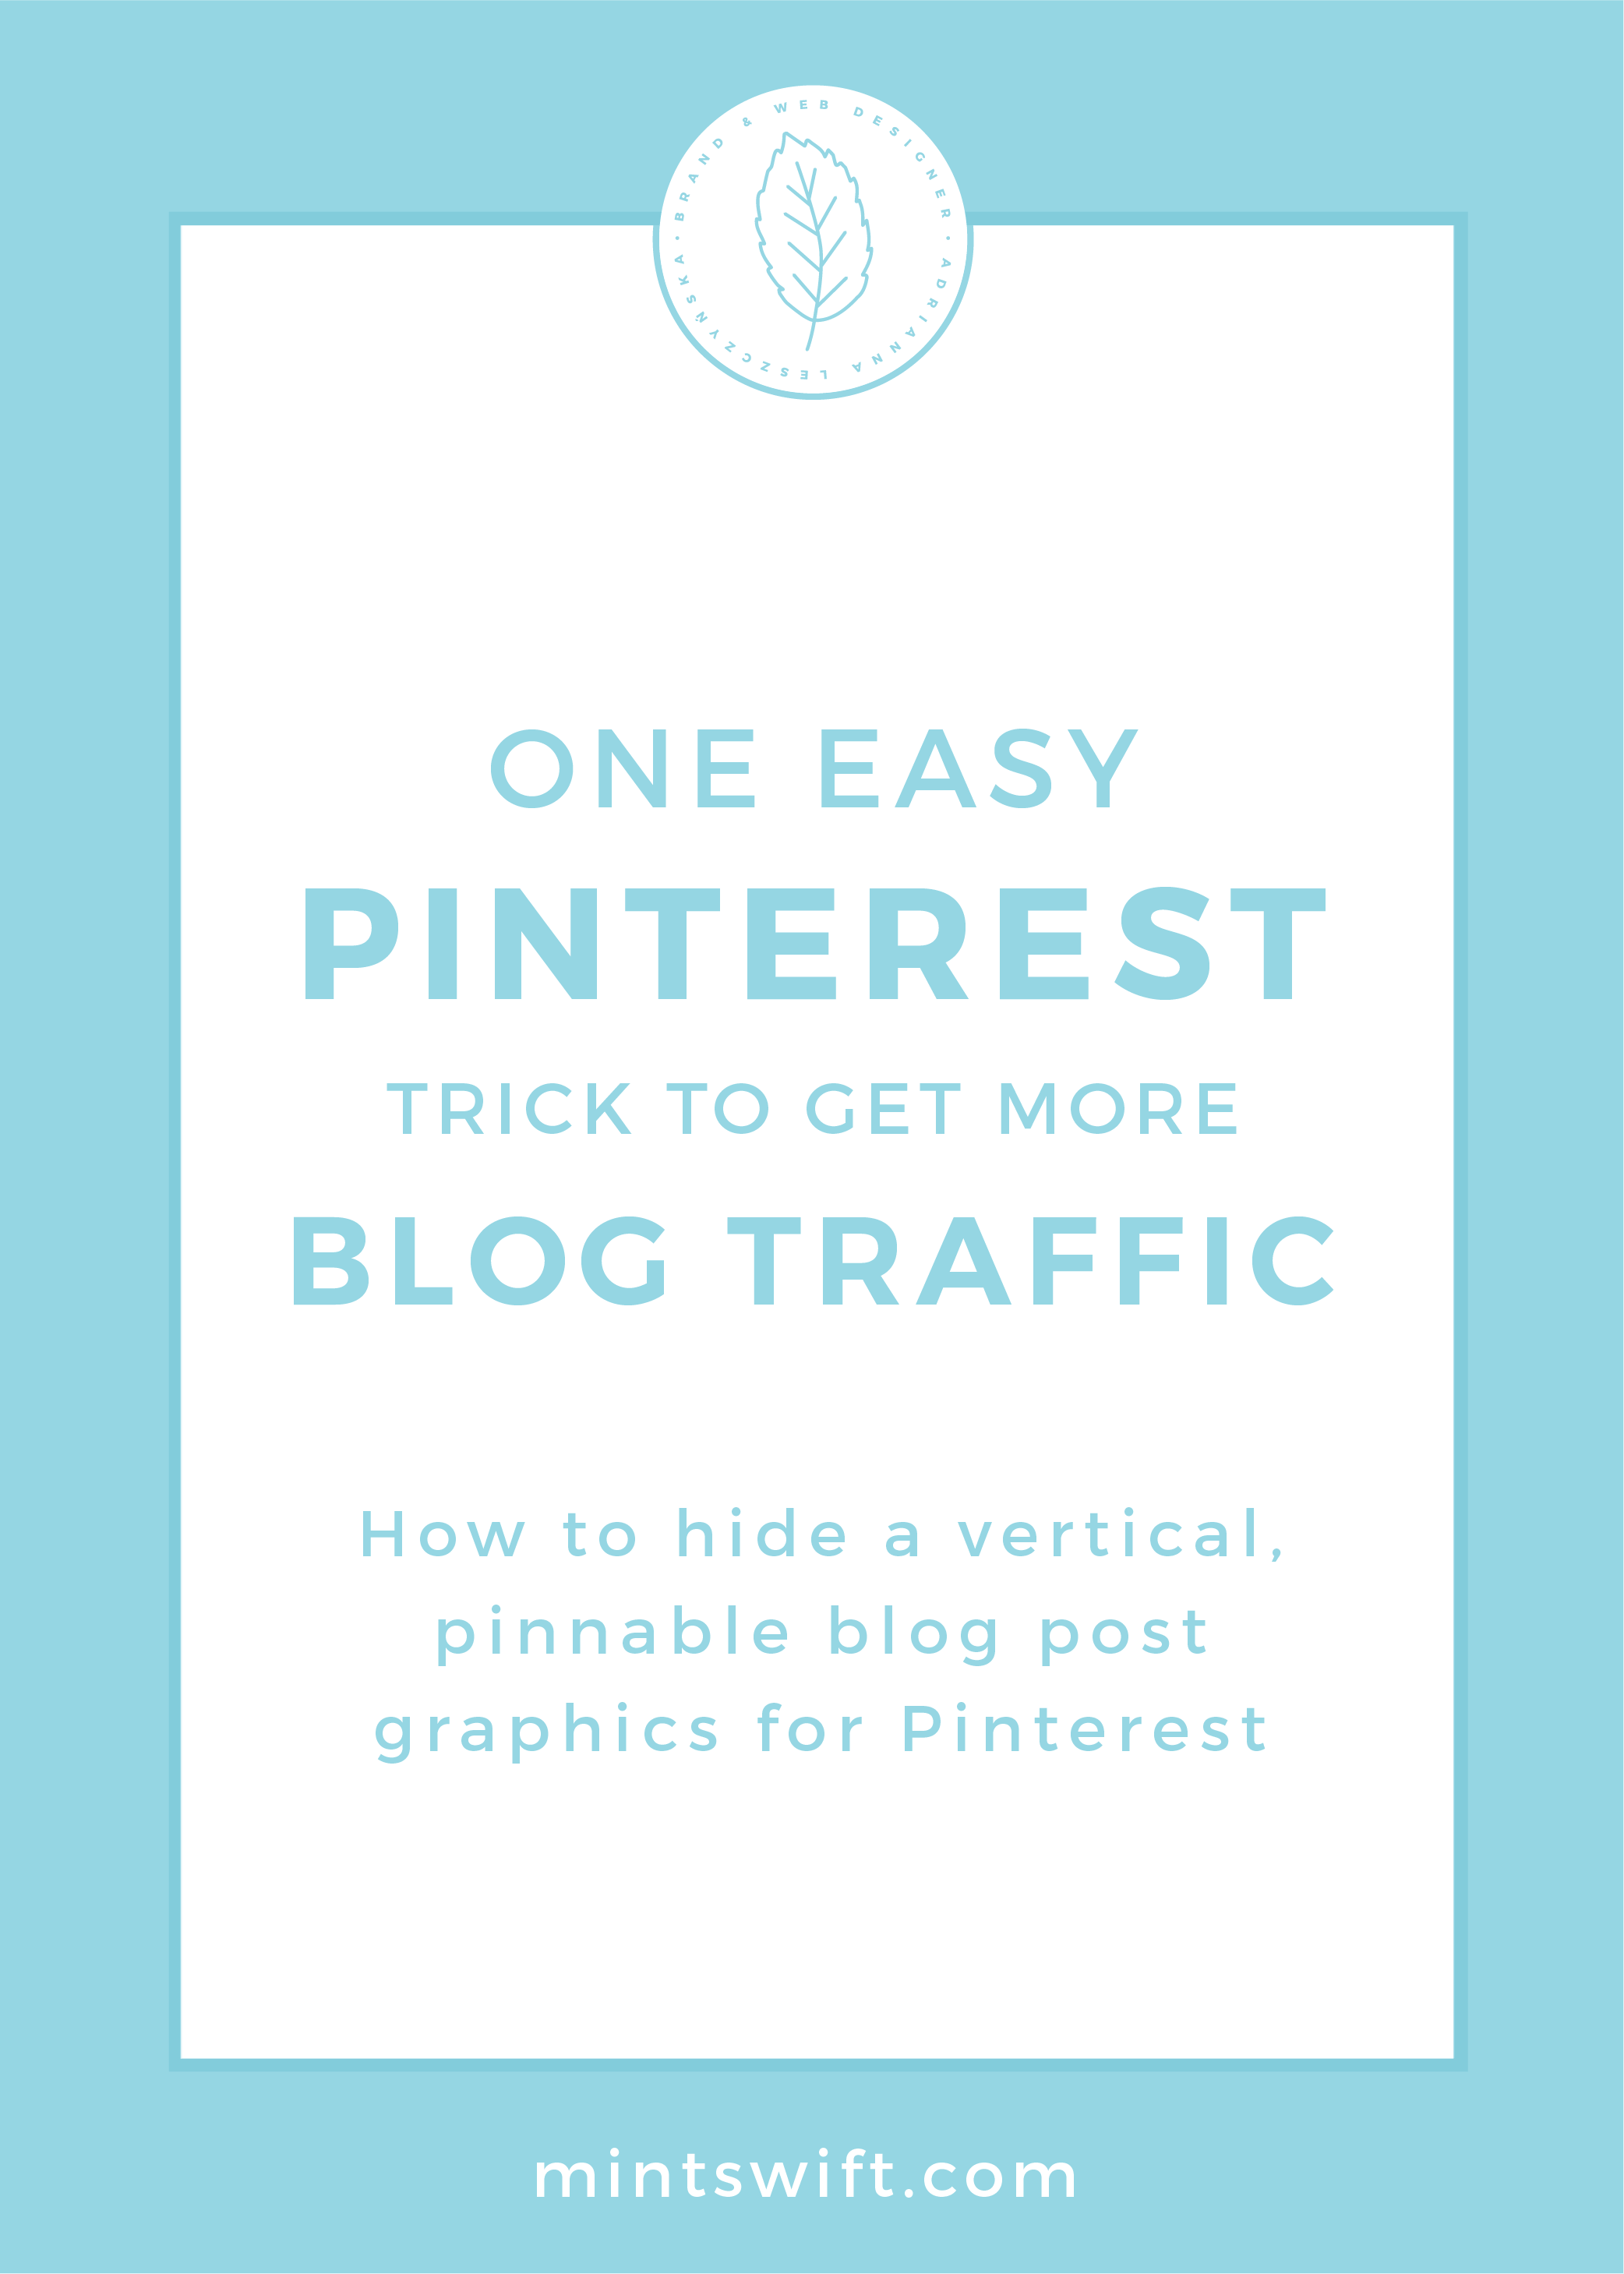 One Easy Pinterest Trick to Get More Blog Traffic. How to Hide a Vertical, Pinnable Blog Post Graphics for Pinterest by MintSwift